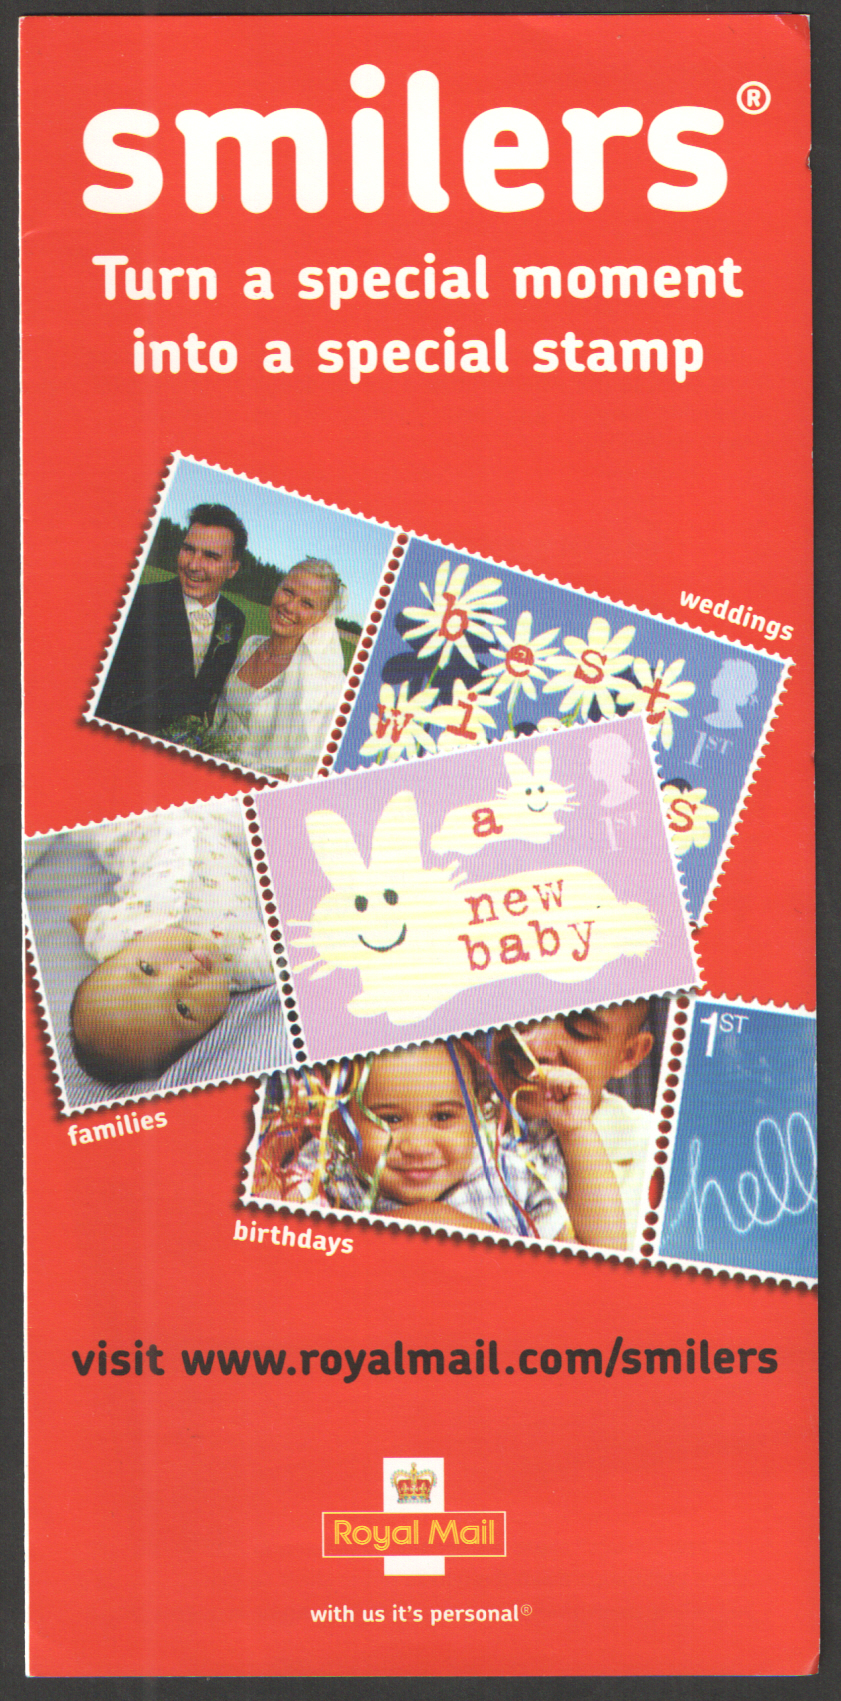 Smilers Royal Mail Promotional Leaflet Code: RMMH053